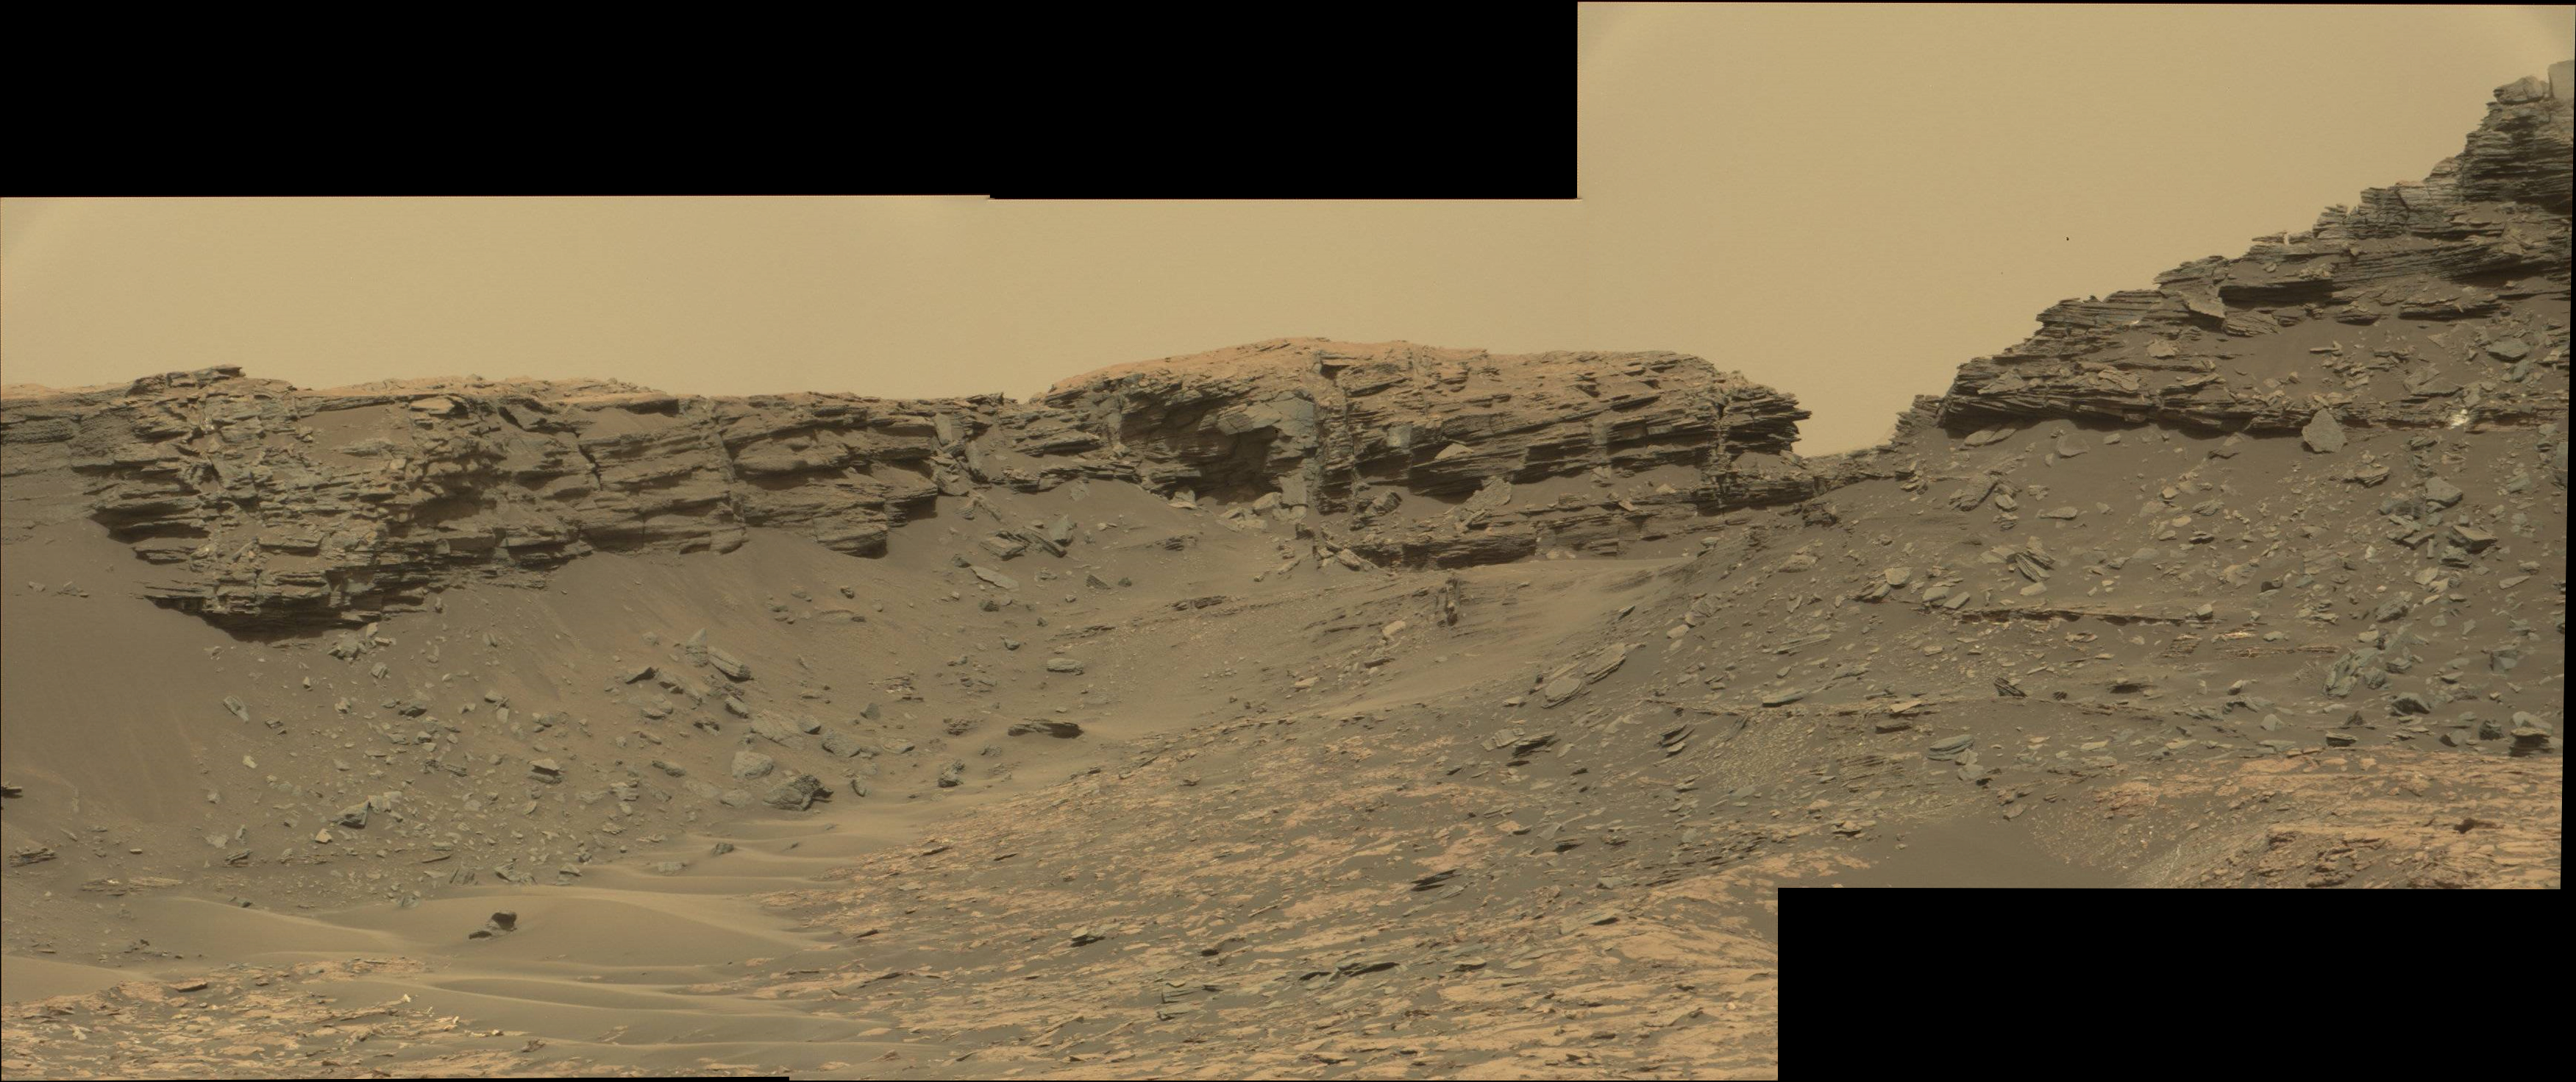 panoramic-curiosity-rover-view-2-3u-sol-1454-was-life-on-mars